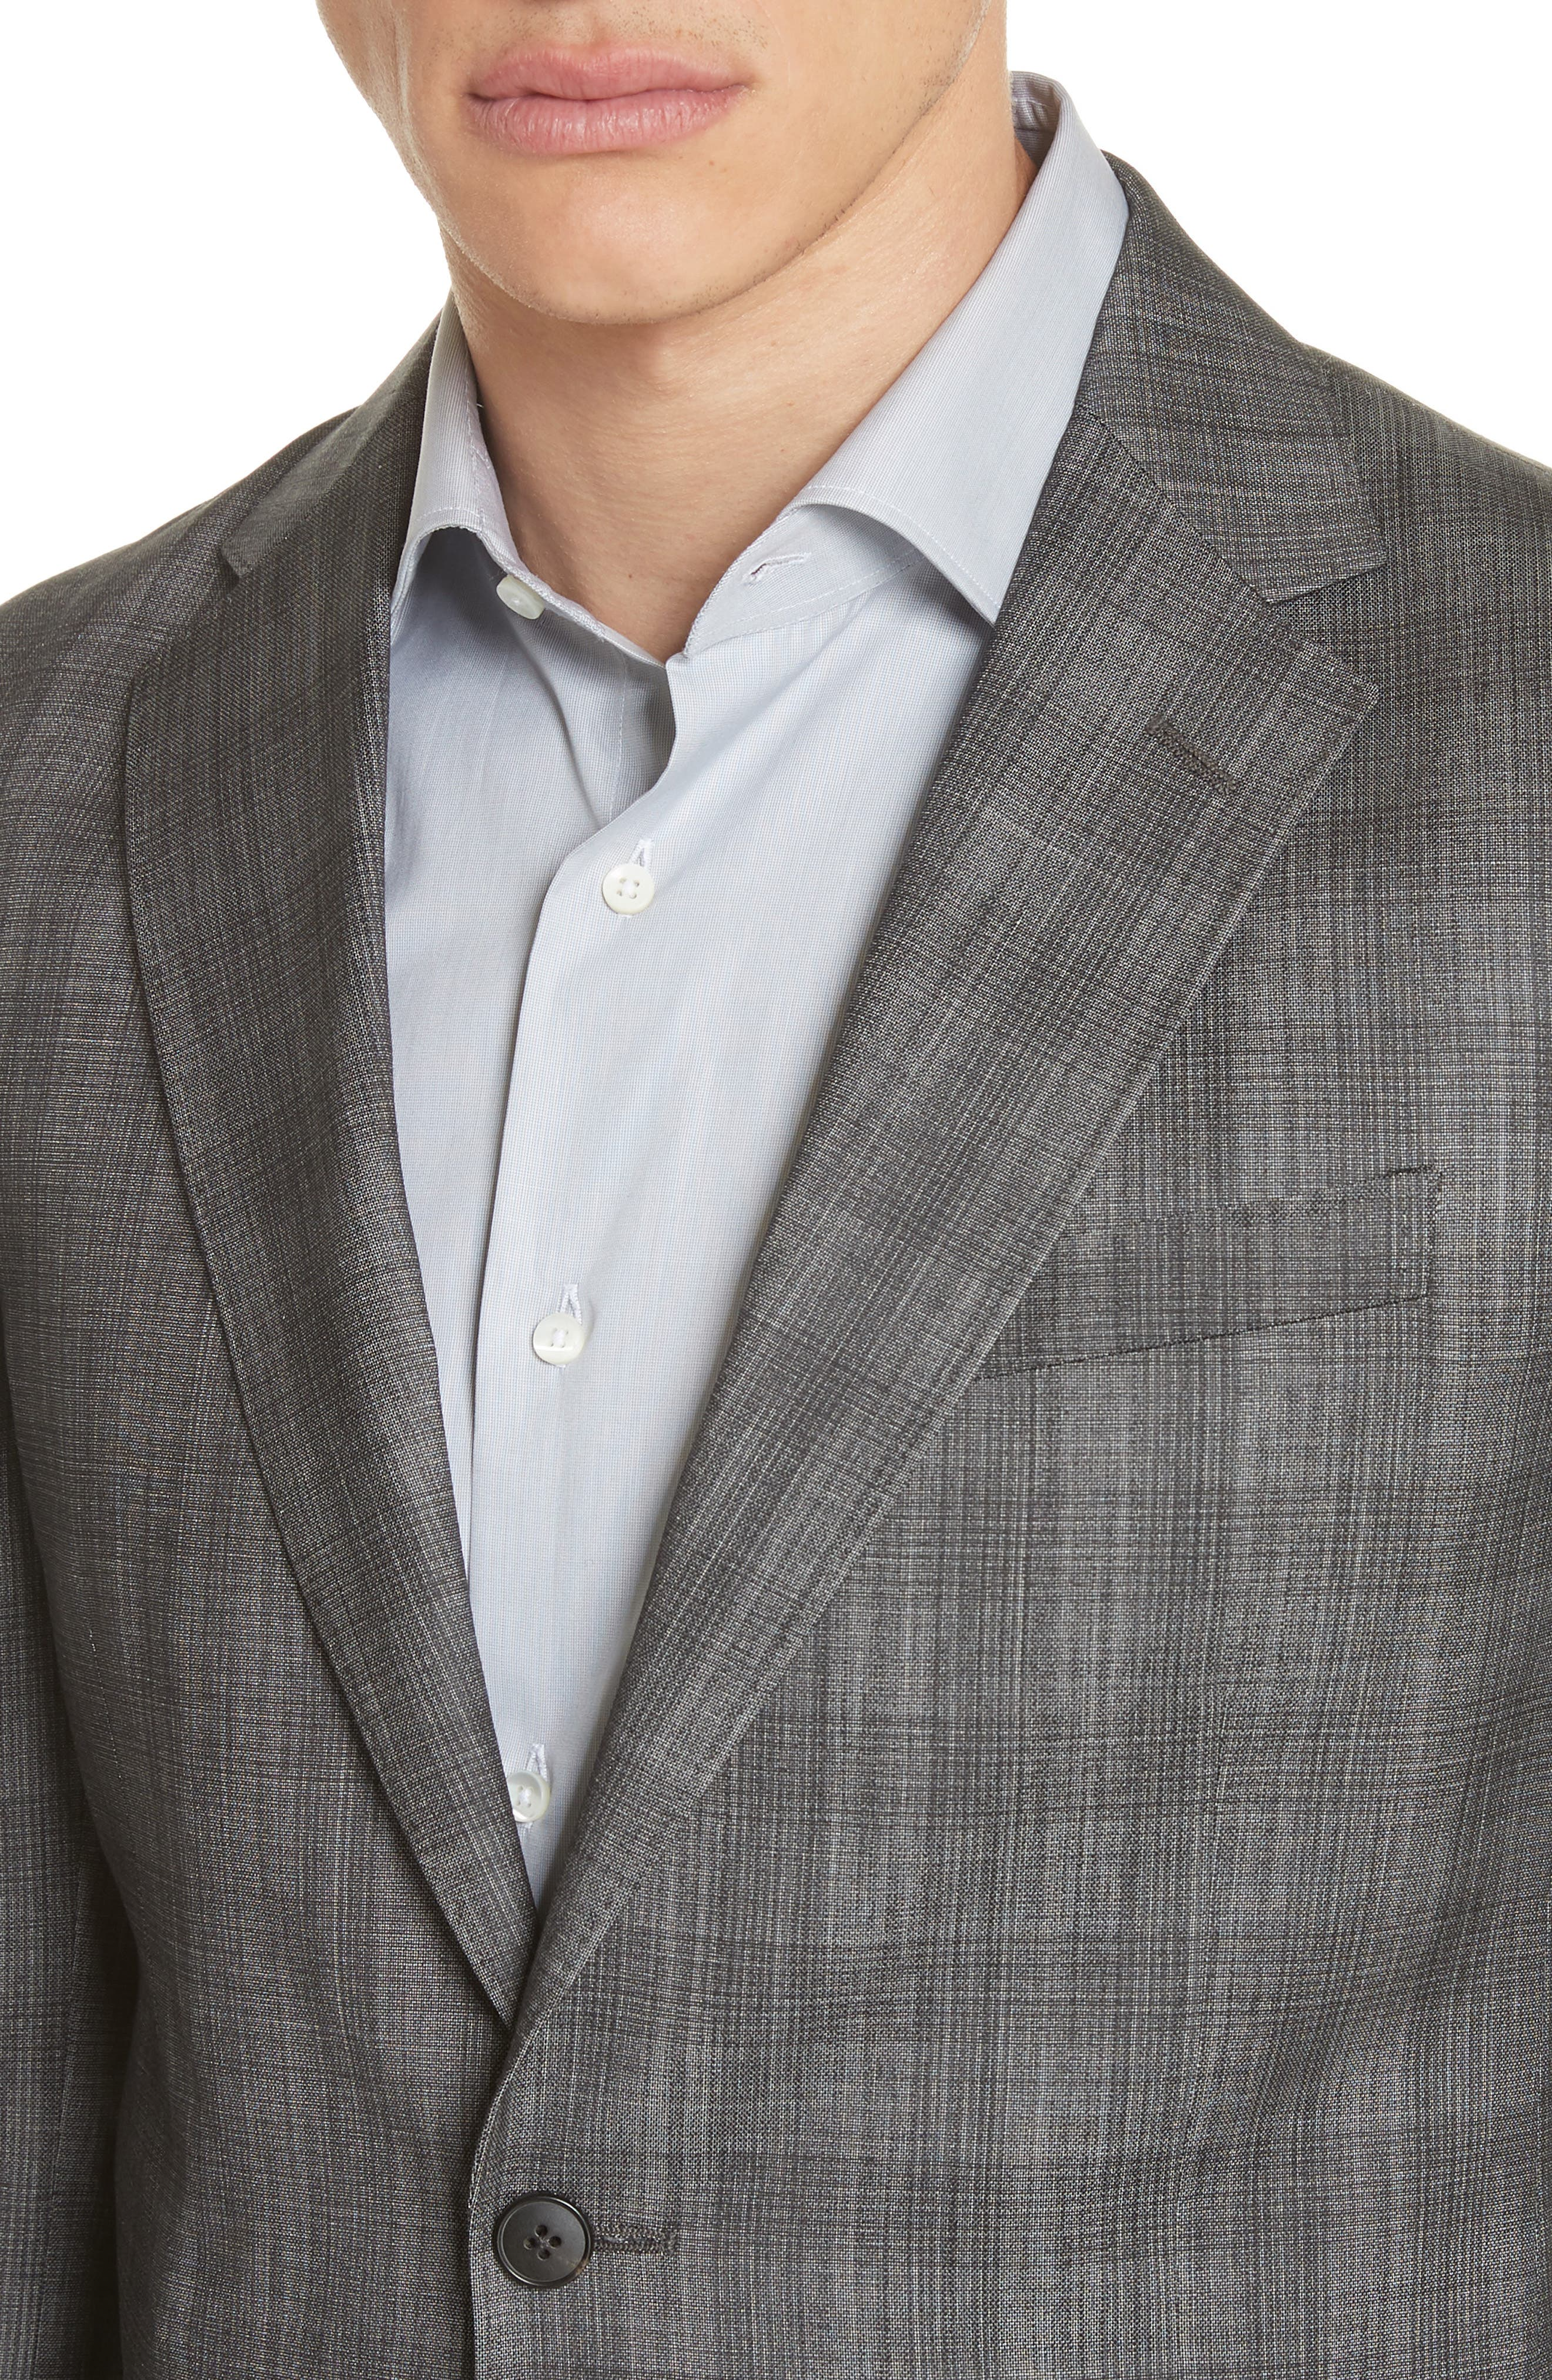 Classic Fit Plaid Wool & Silk Suit,                             Alternate thumbnail 4, color,                             Dark Grey Check